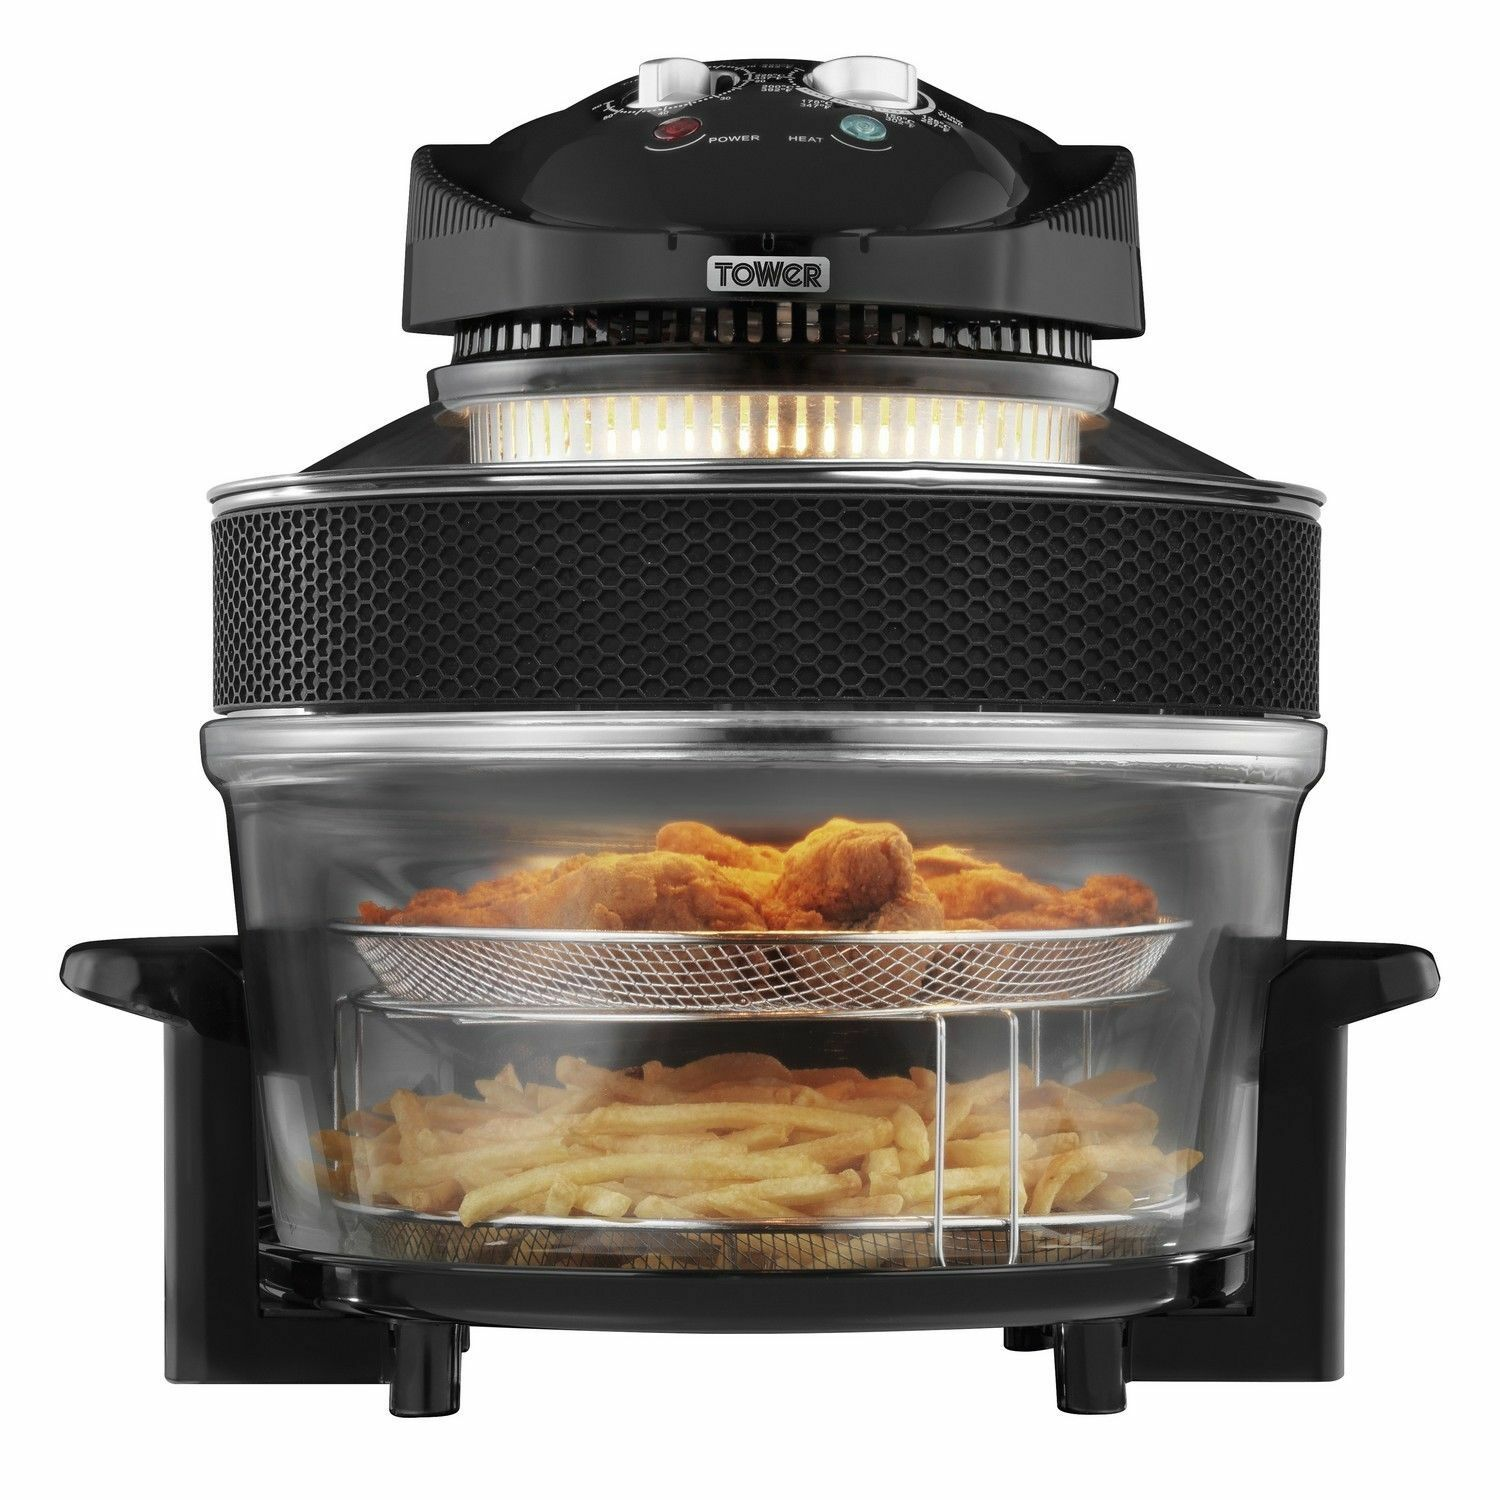 New Air Cooker ~ Tower l w airwave low fat air fryer oven oil free